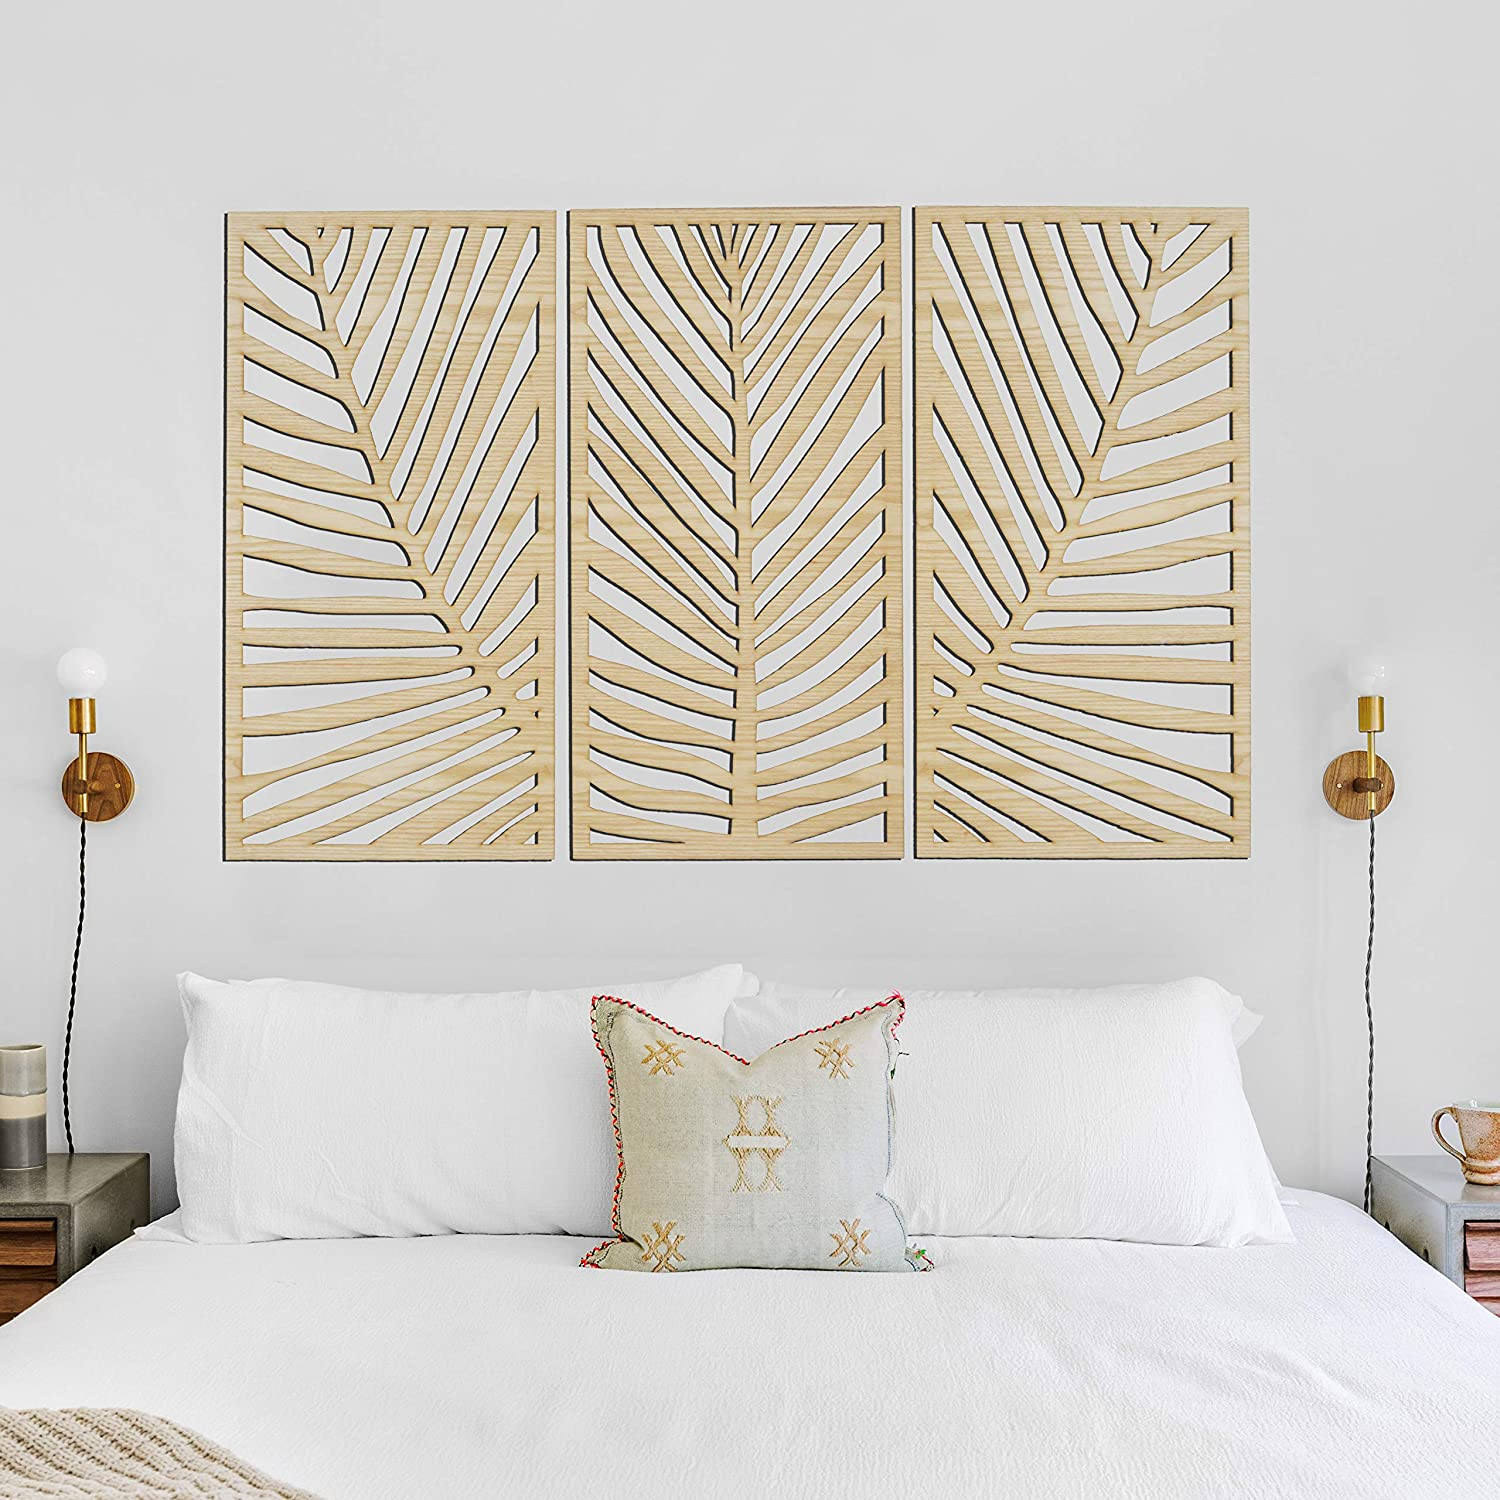 Wall decor Palm Leaves Wall Art // a Set of 3 // Wooden Living Room (L 12